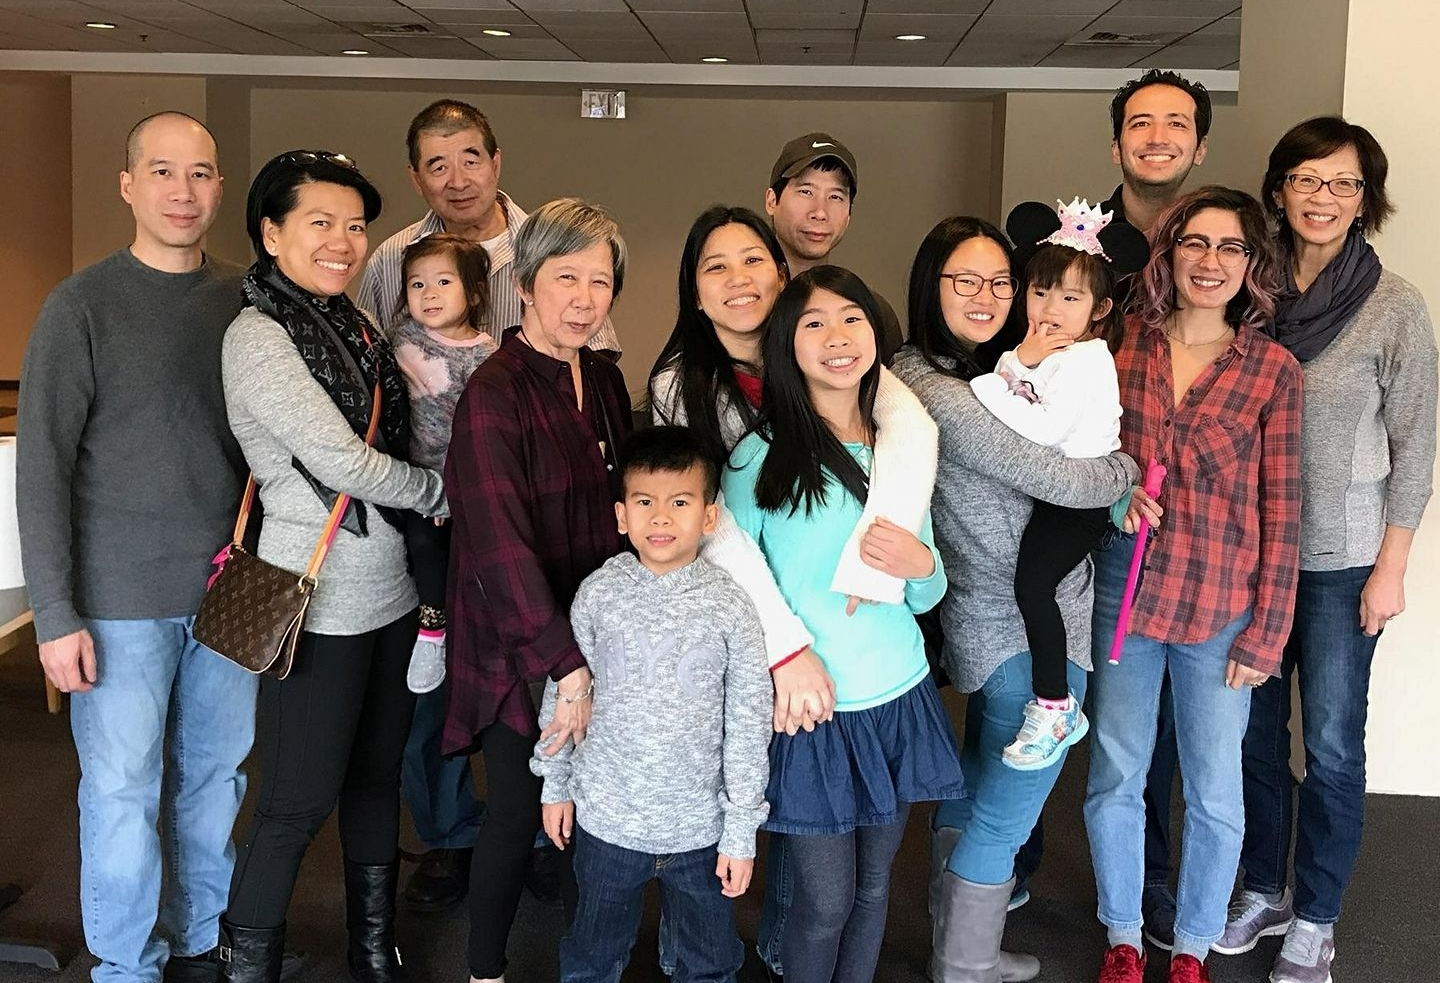 Matt Blank and his family, as Chinese as you'll ever see them. Look closely and you can spot Hapa Mag founder Alex Chester.